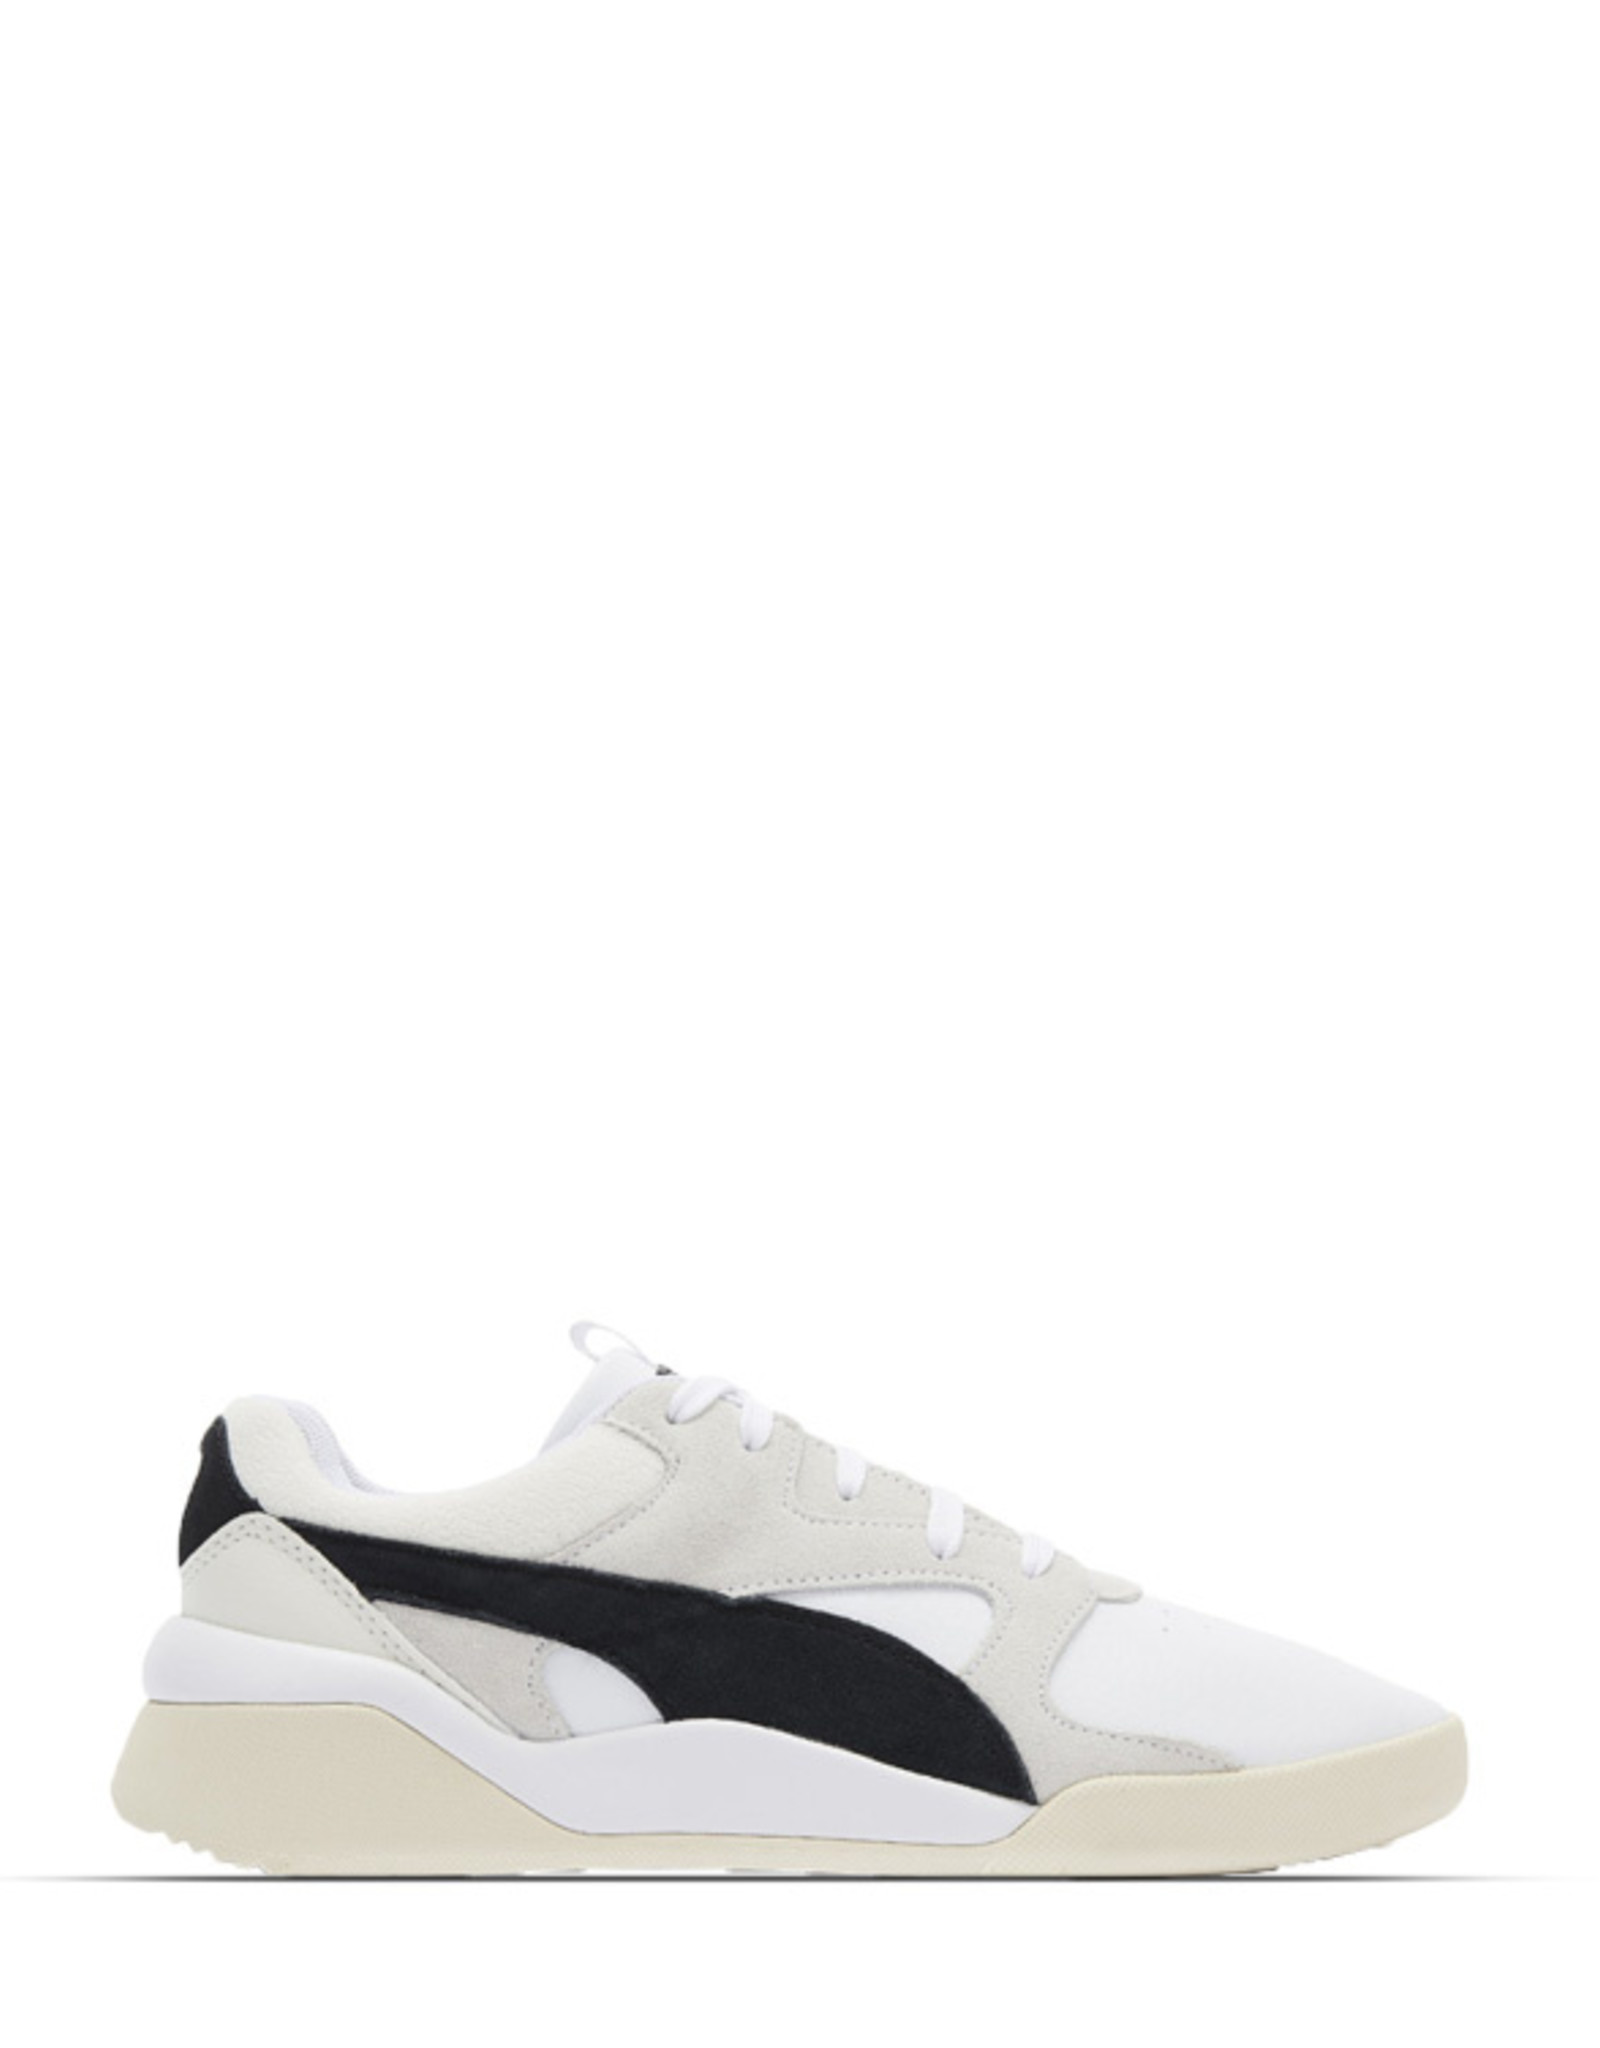 PUMA HERITAGE WHITE BLACK TRAINERS